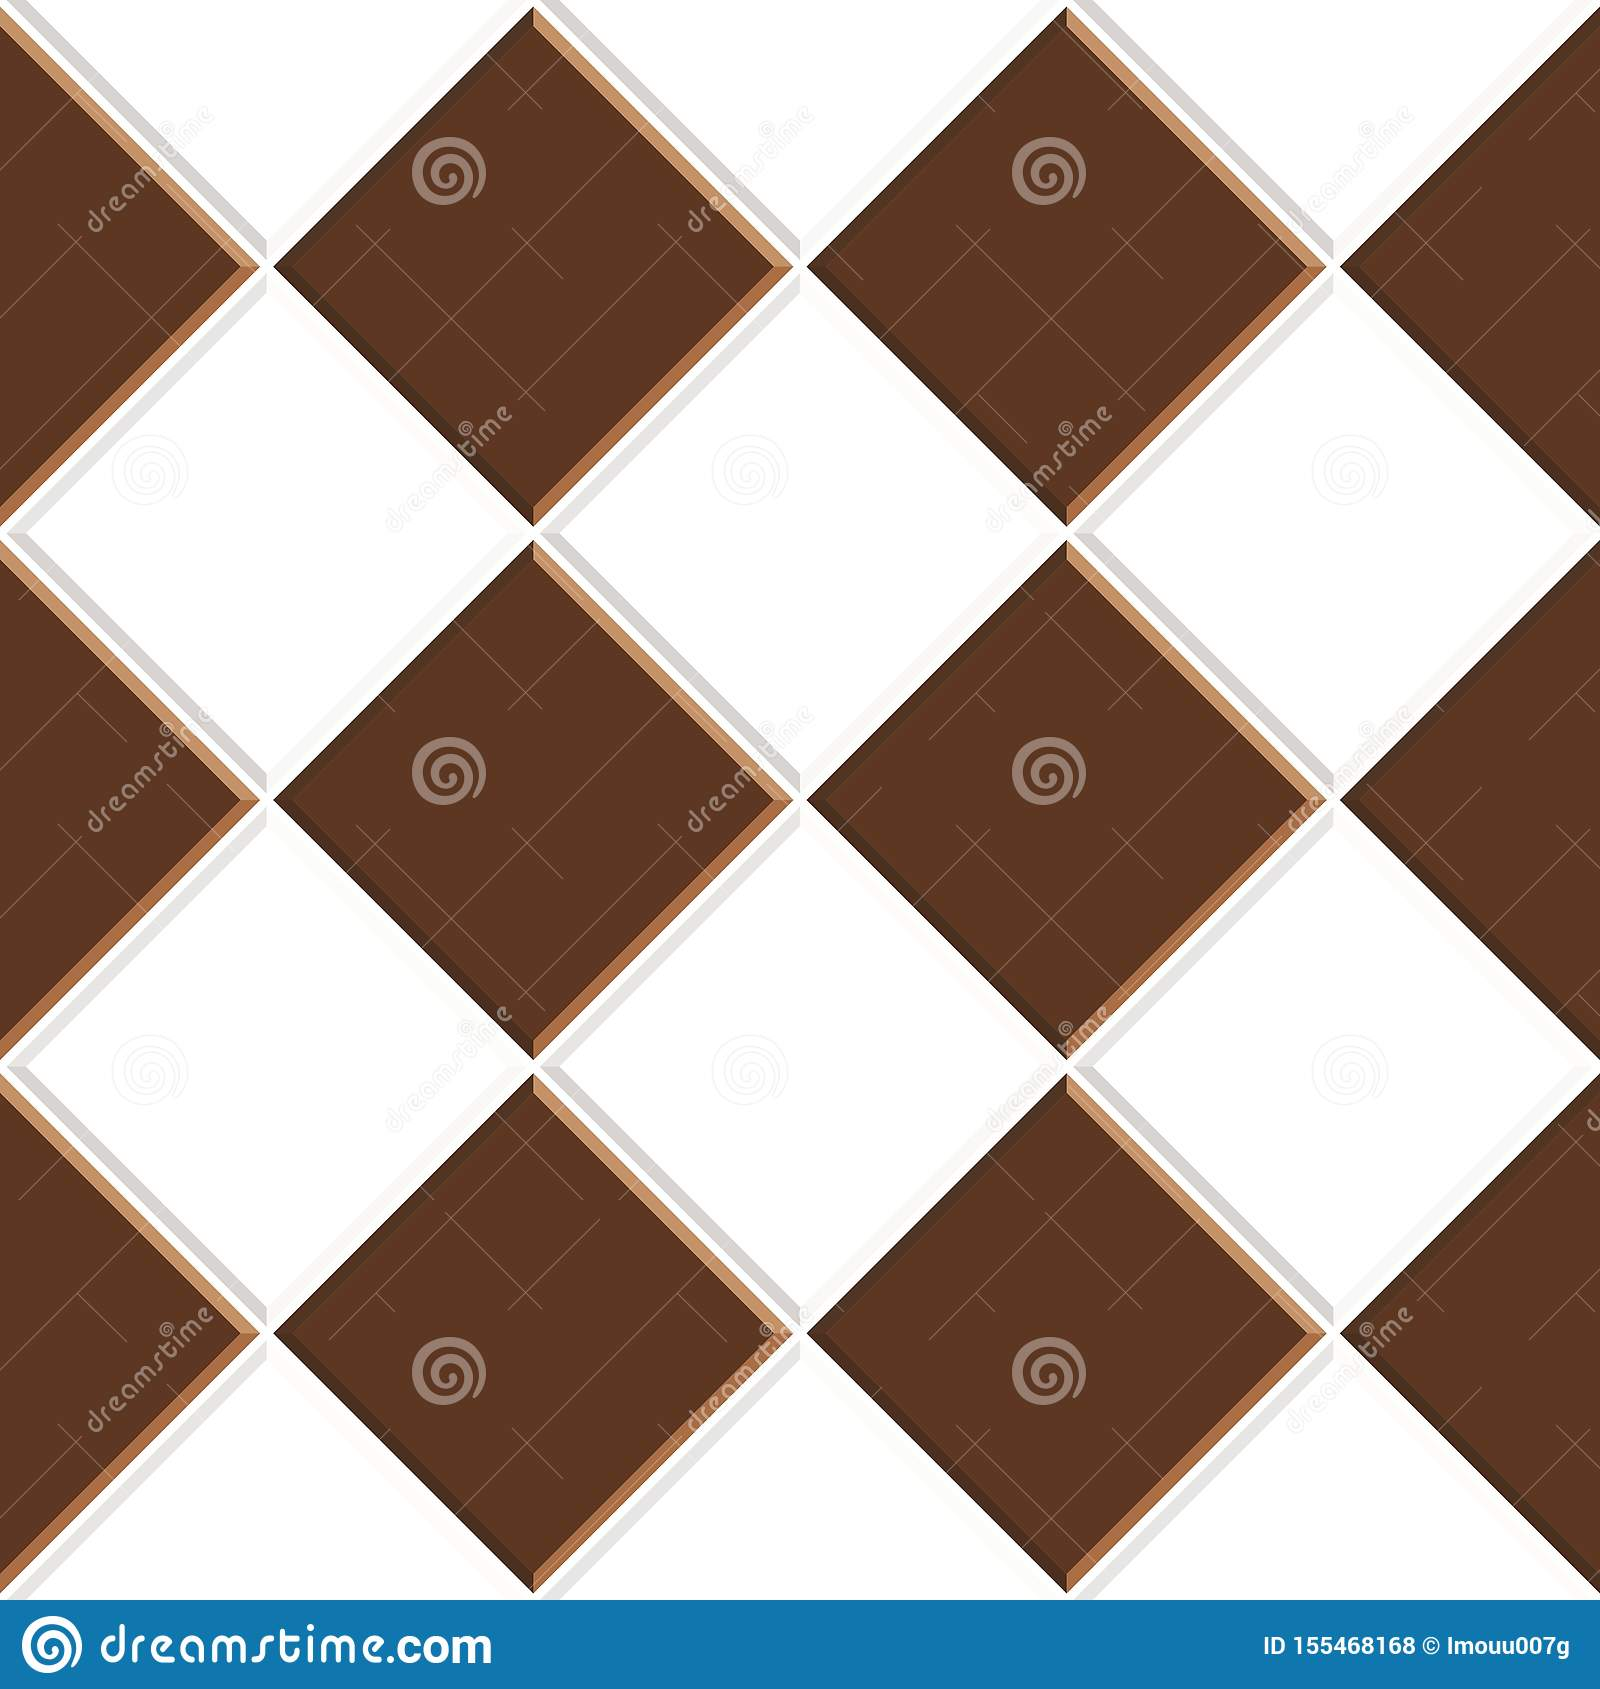 https www dreamstime com abstract seamless pattern brown white ceramic floor tiles design geometric mosaic texture decoration kitchen image155468168